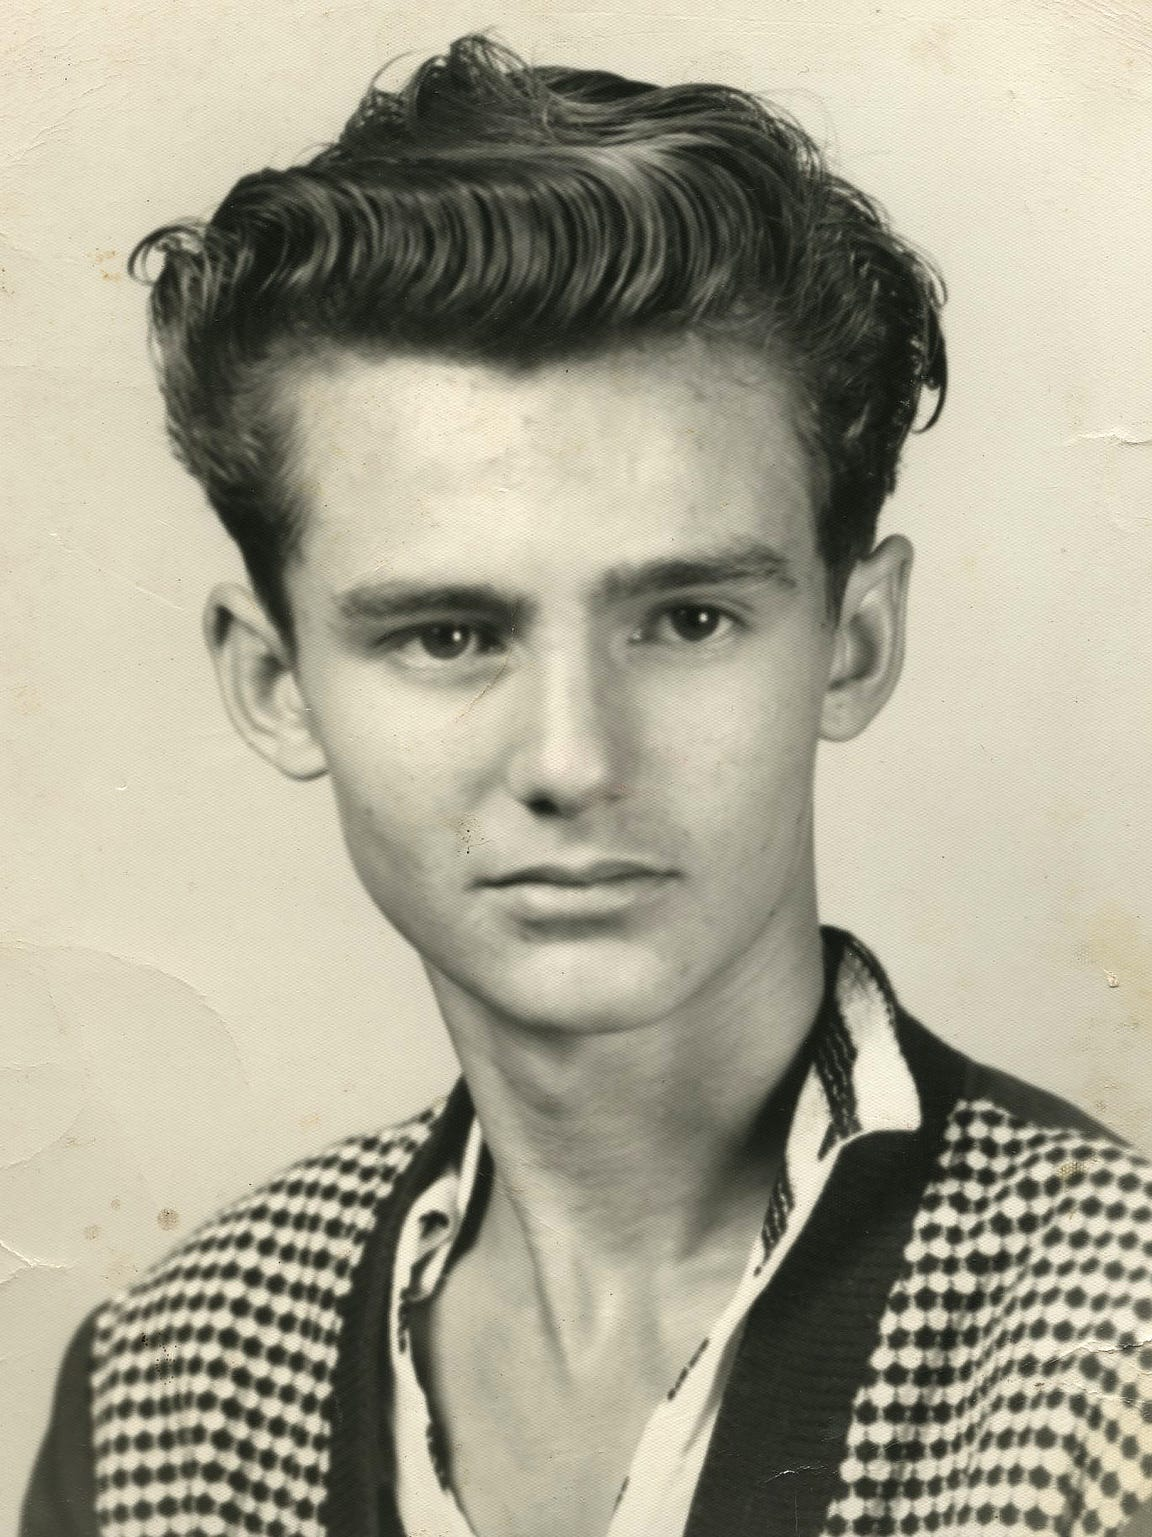 Bob Paillet at age 16. He graduated from Exeter High